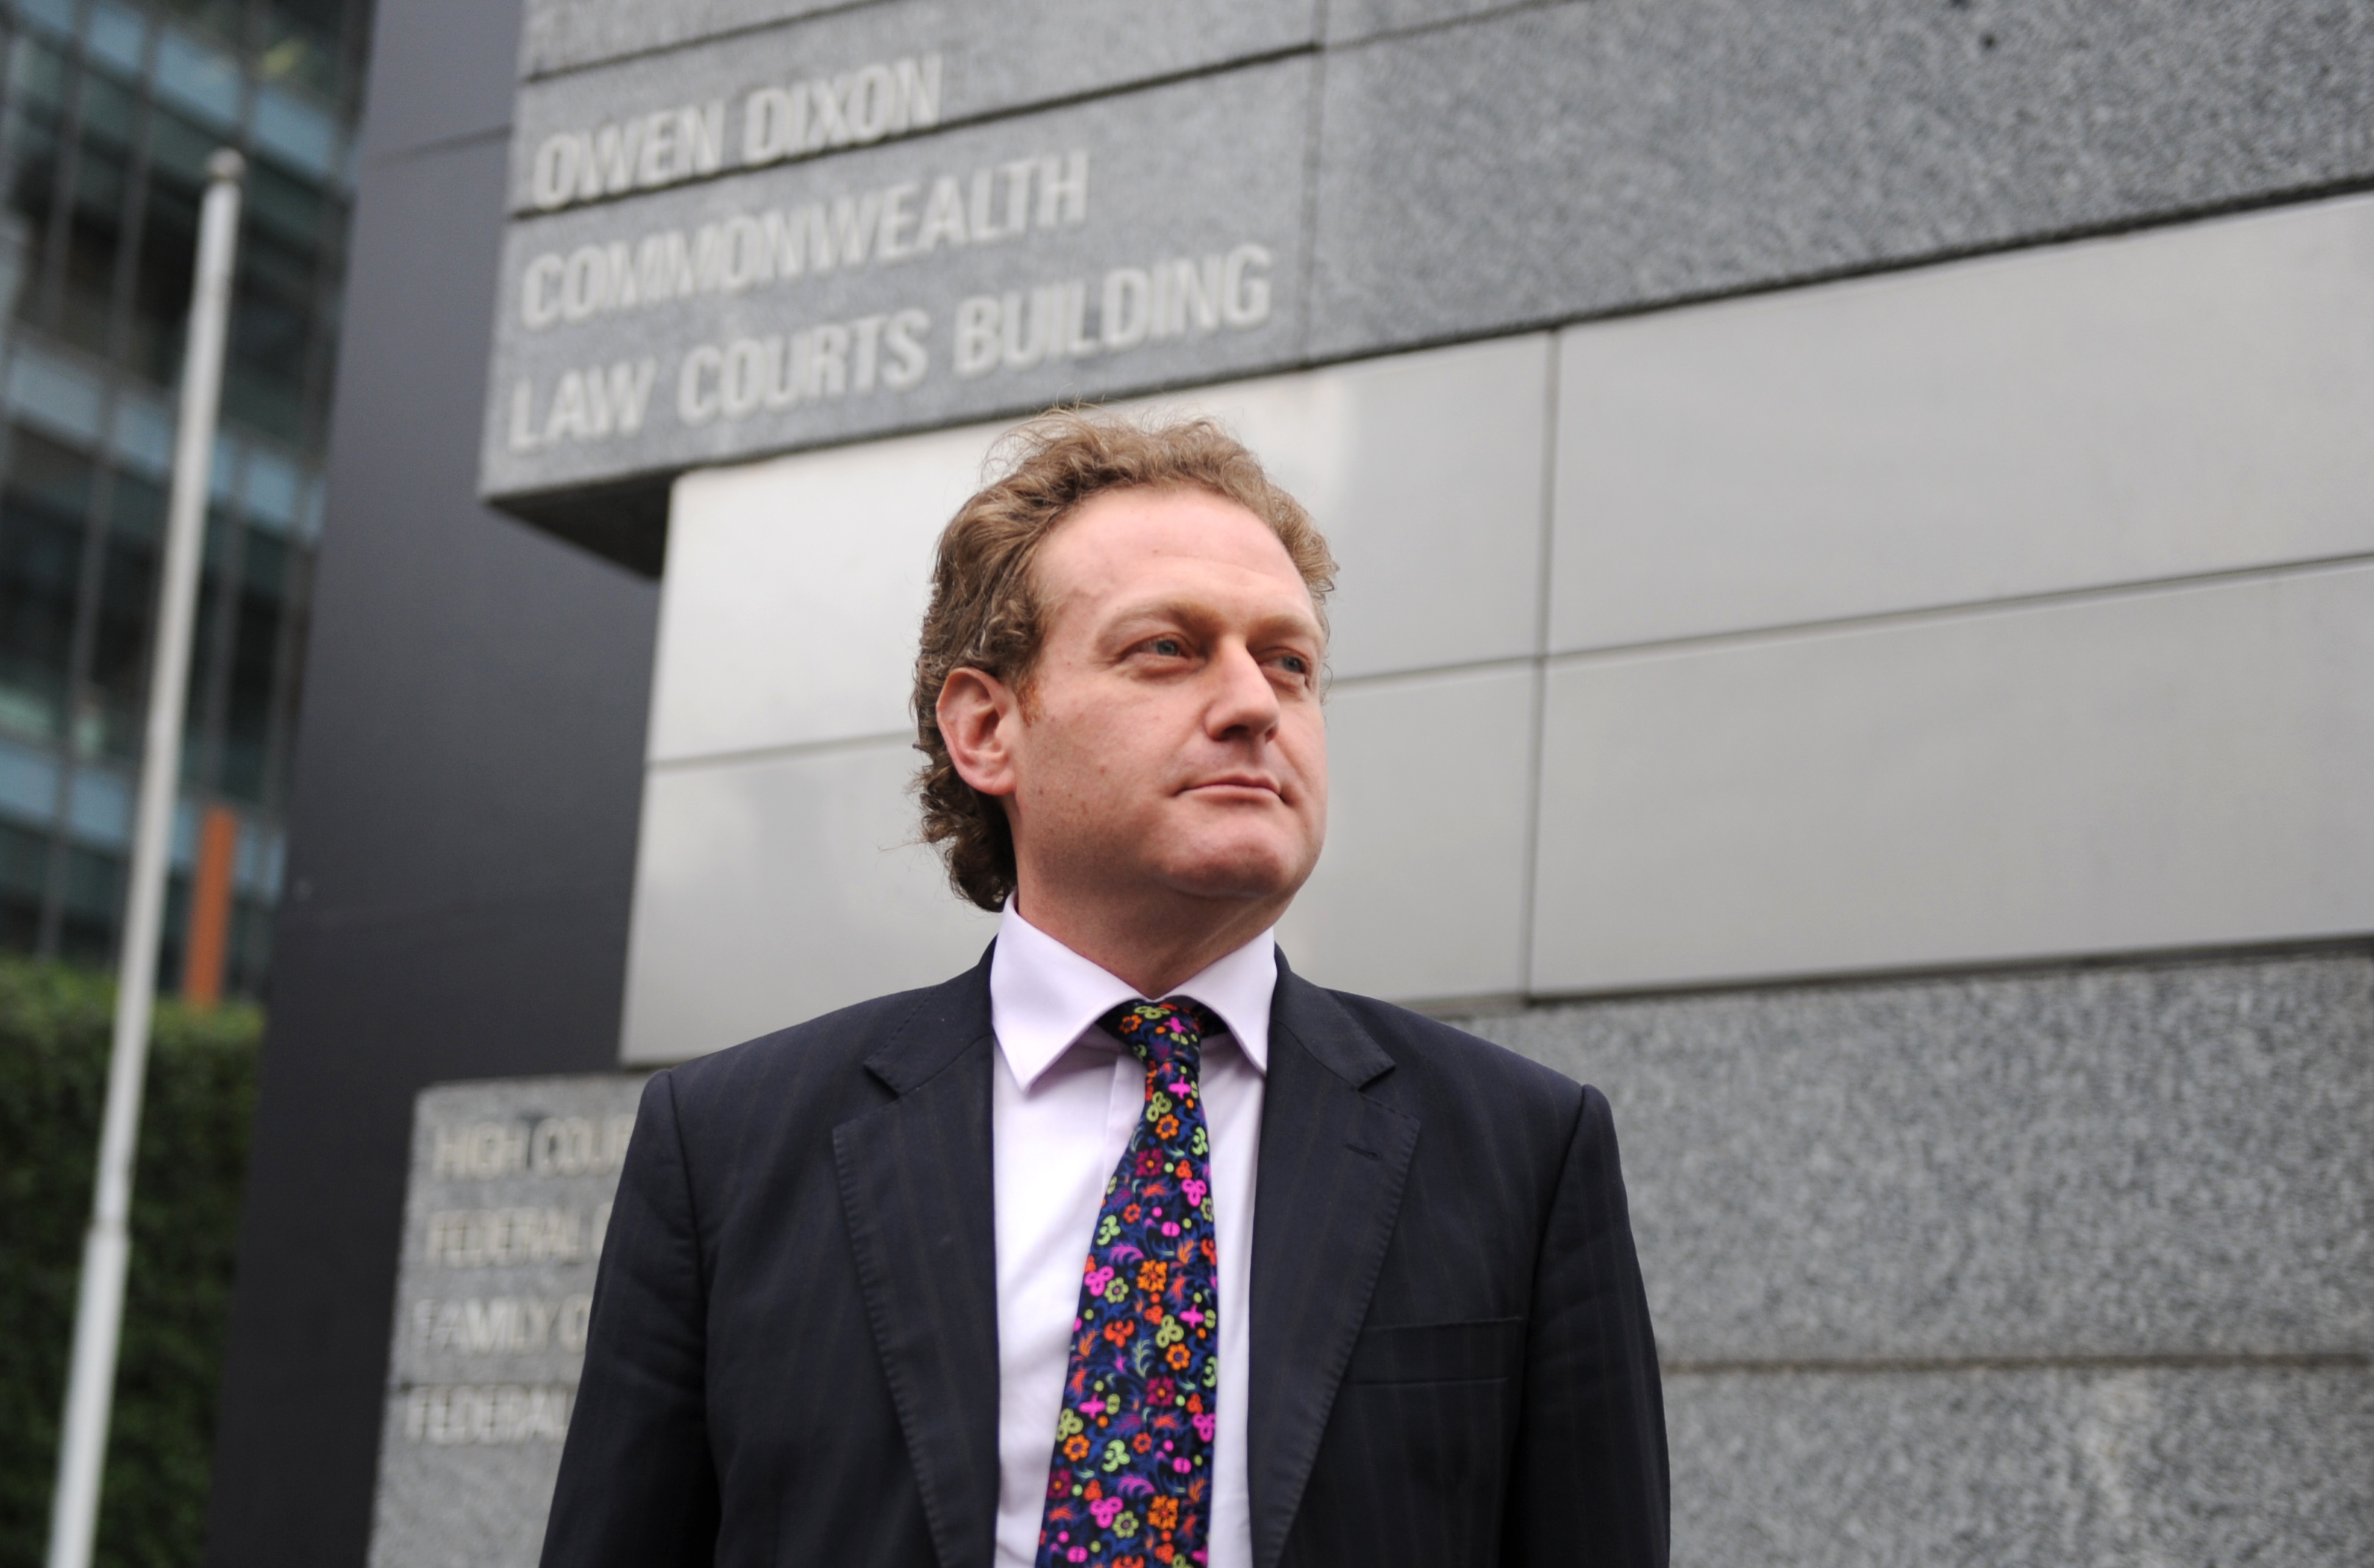 Lawyer David Manne waits outside the Federal Court in Melbourne